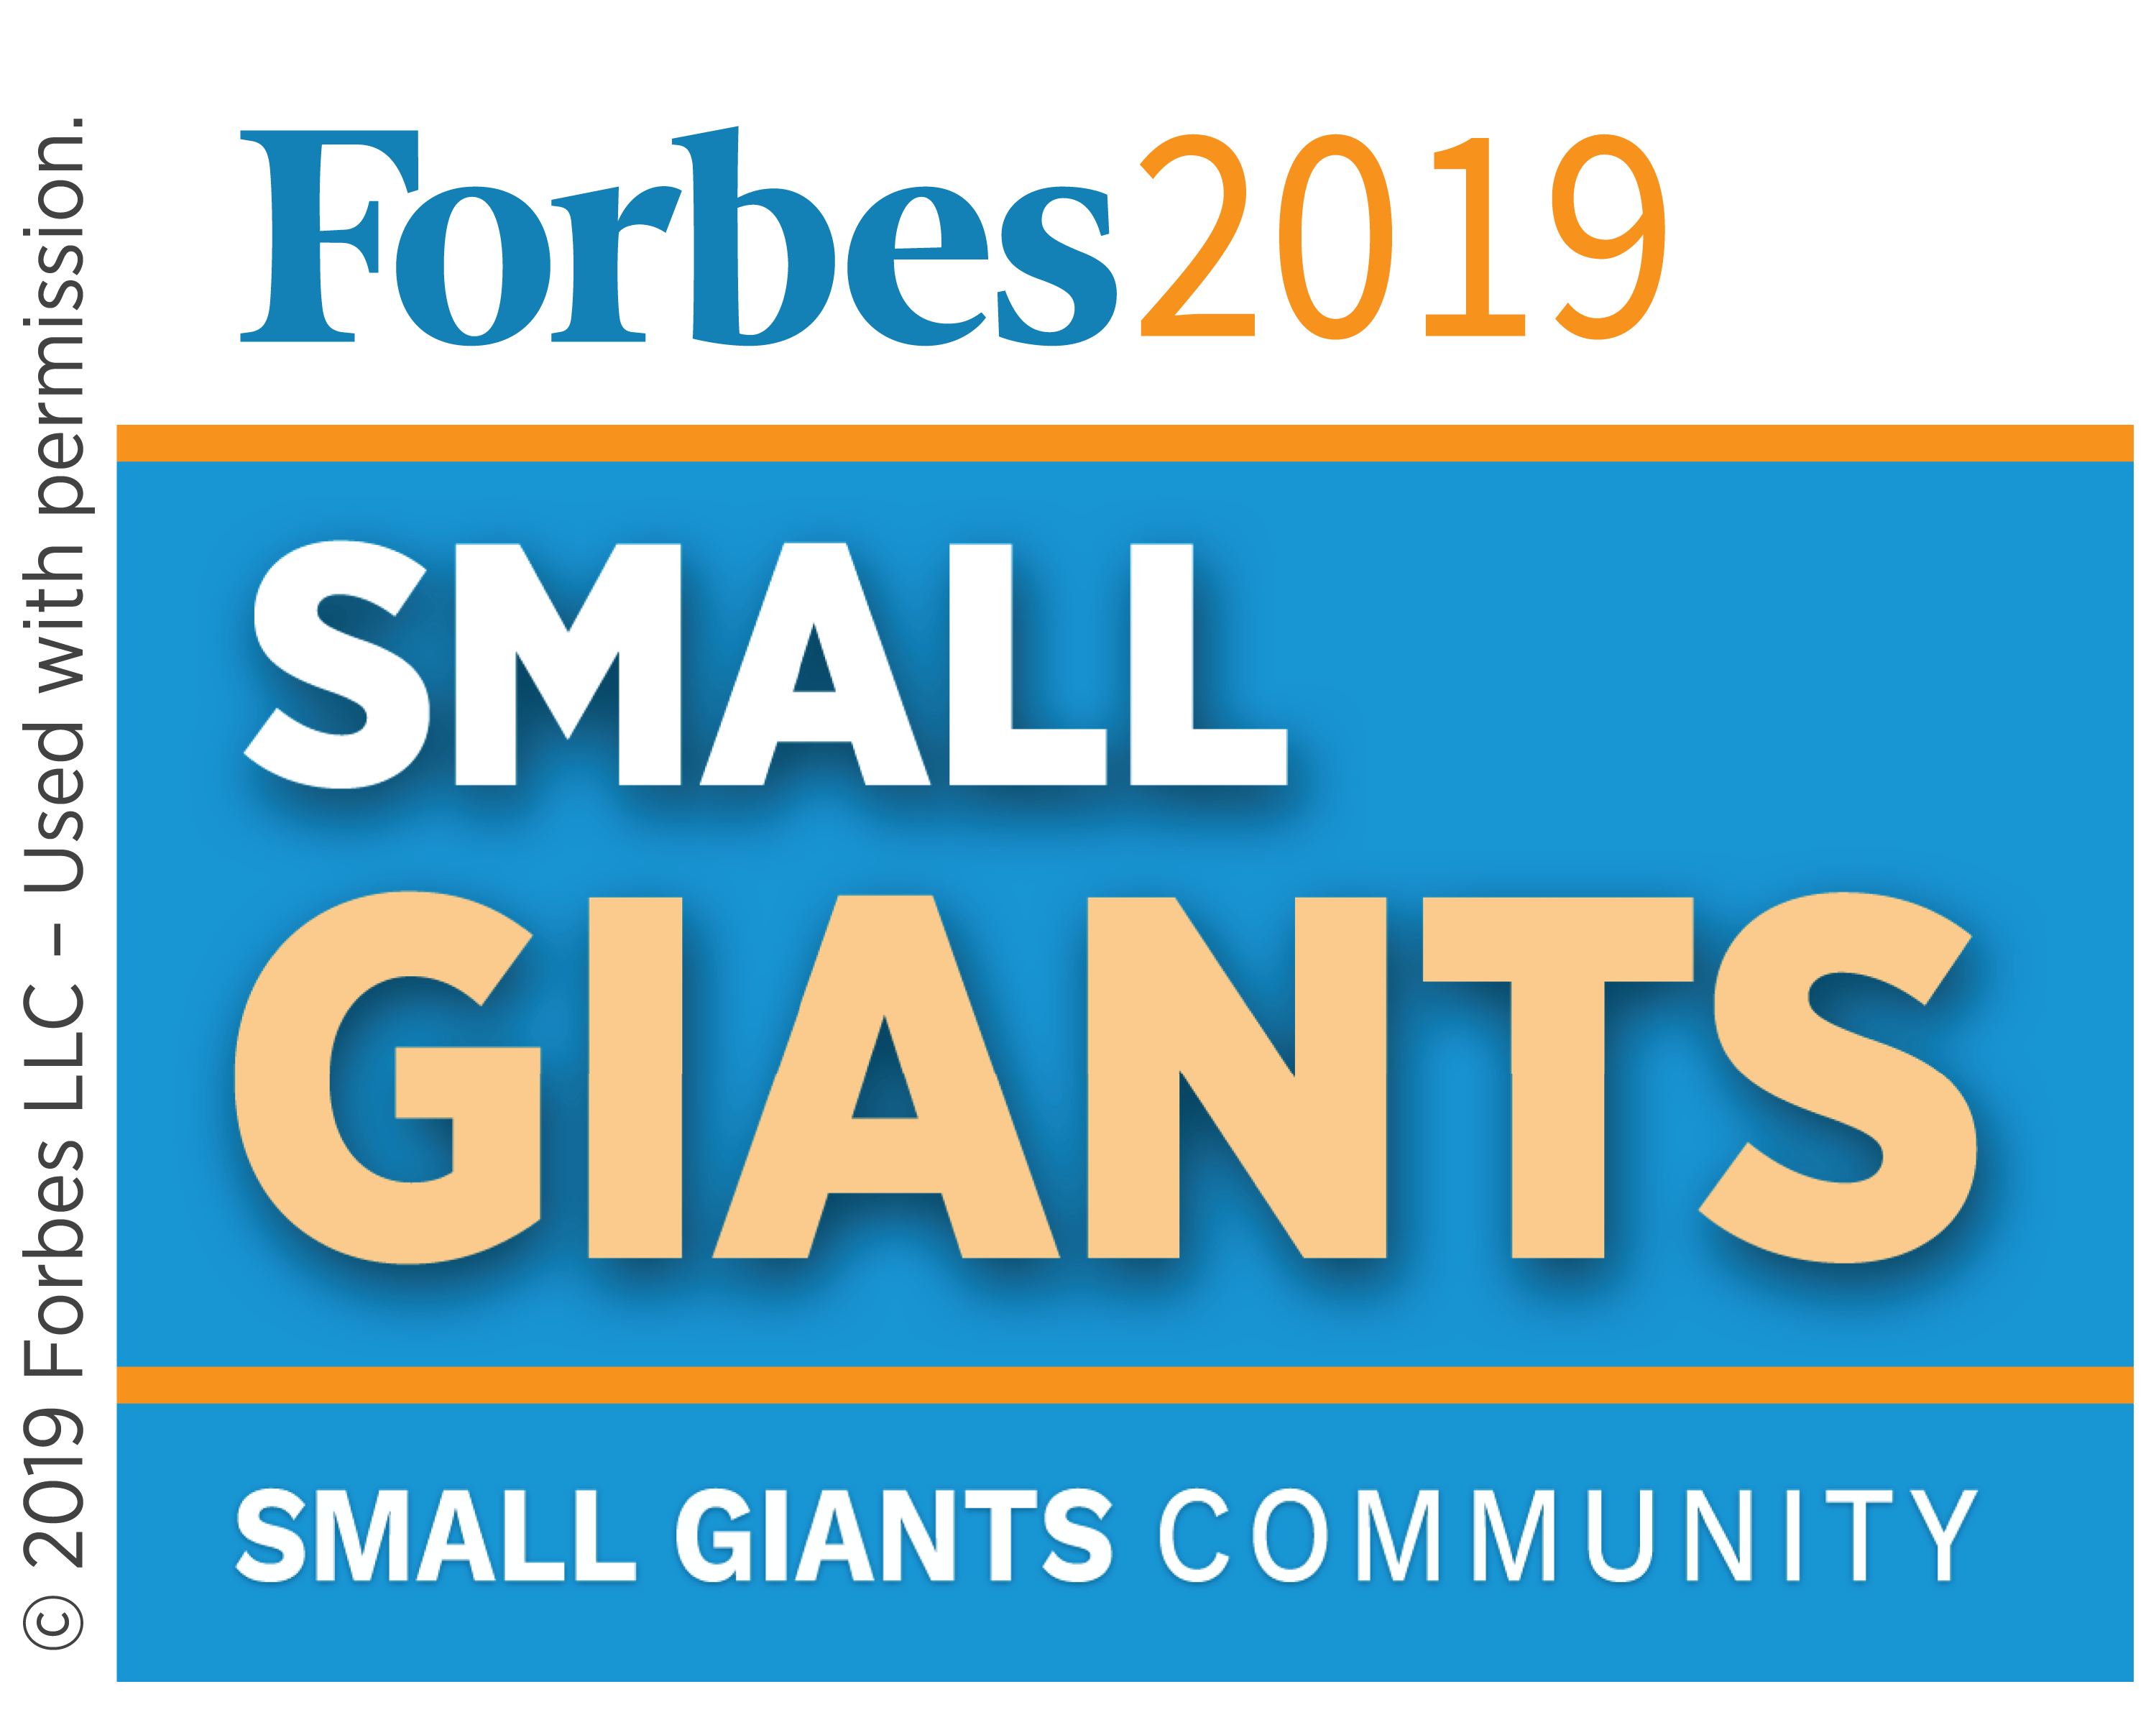 Small Giants 2019